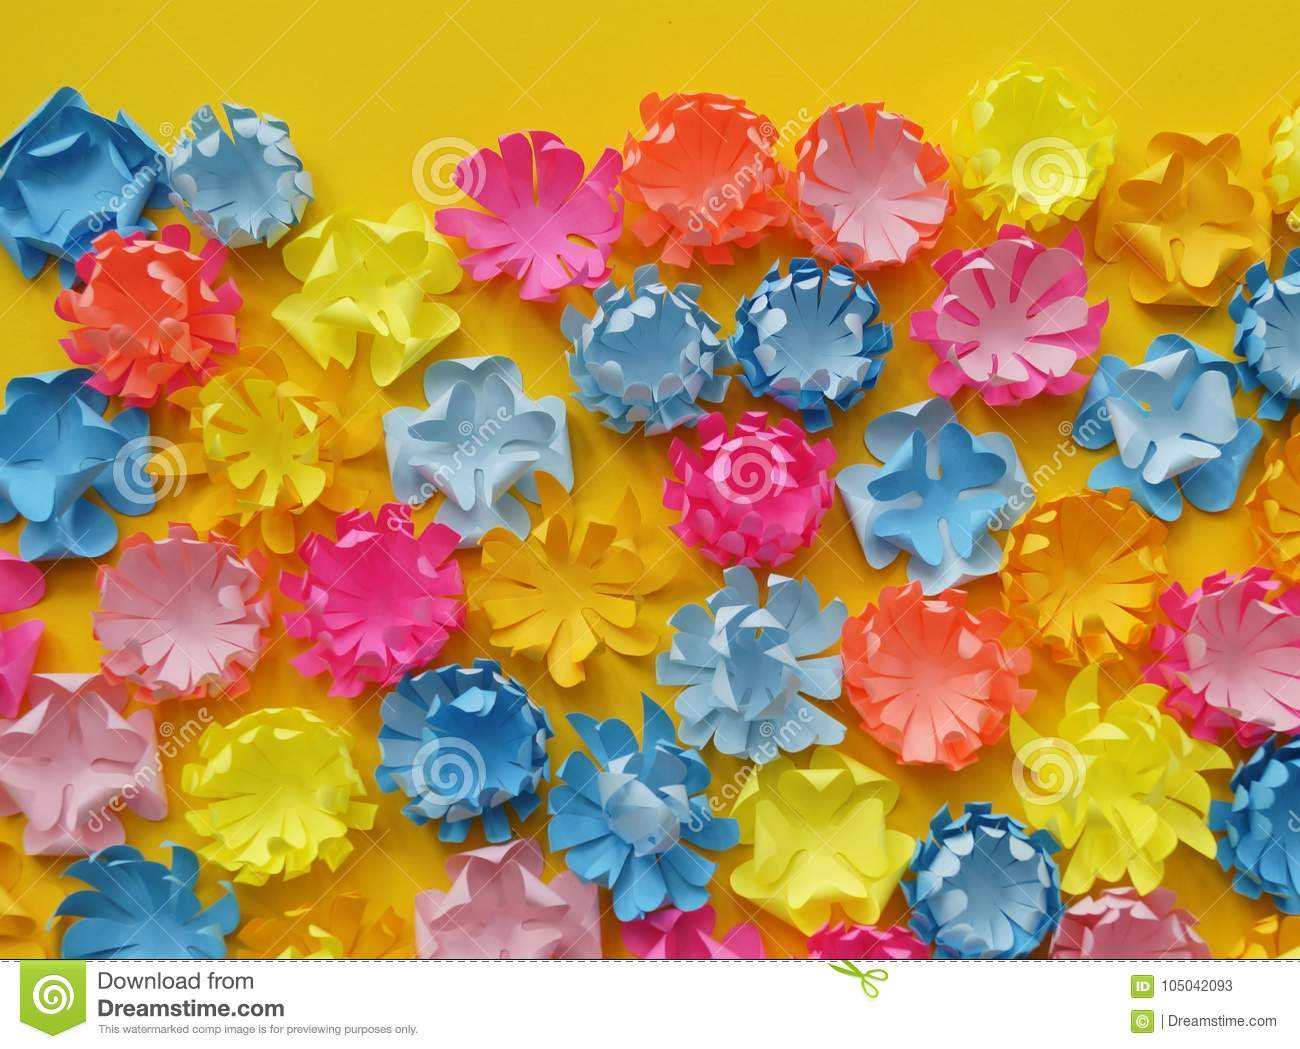 Paper Flower Glade Of Multi Colored Flowers Yellow Background